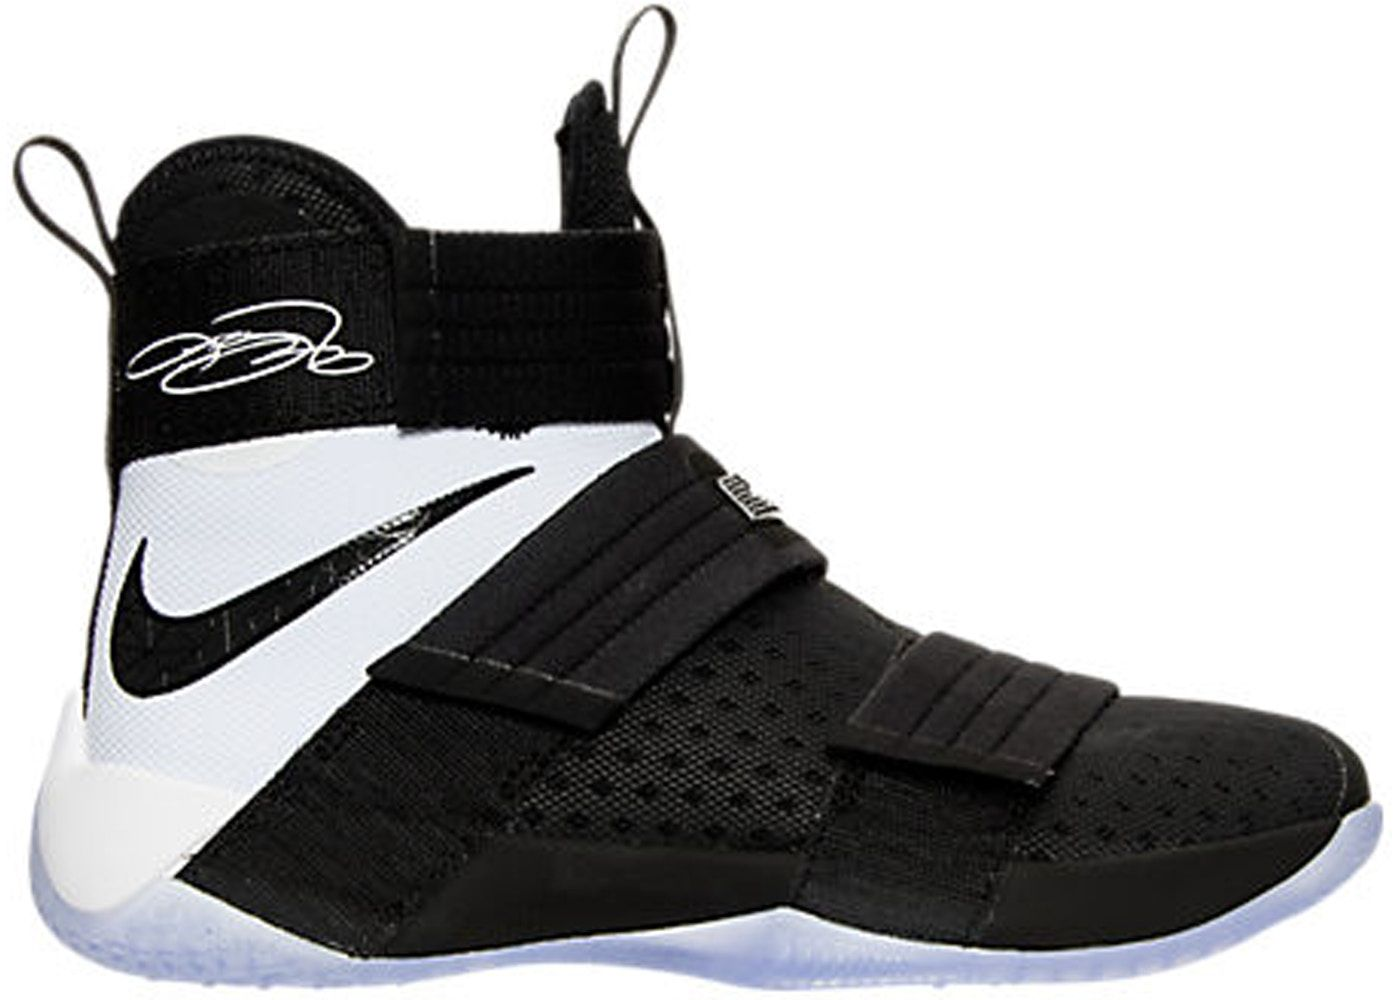 uk availability 3b758 8b208 LeBron Zoom Soldier 10 Black White